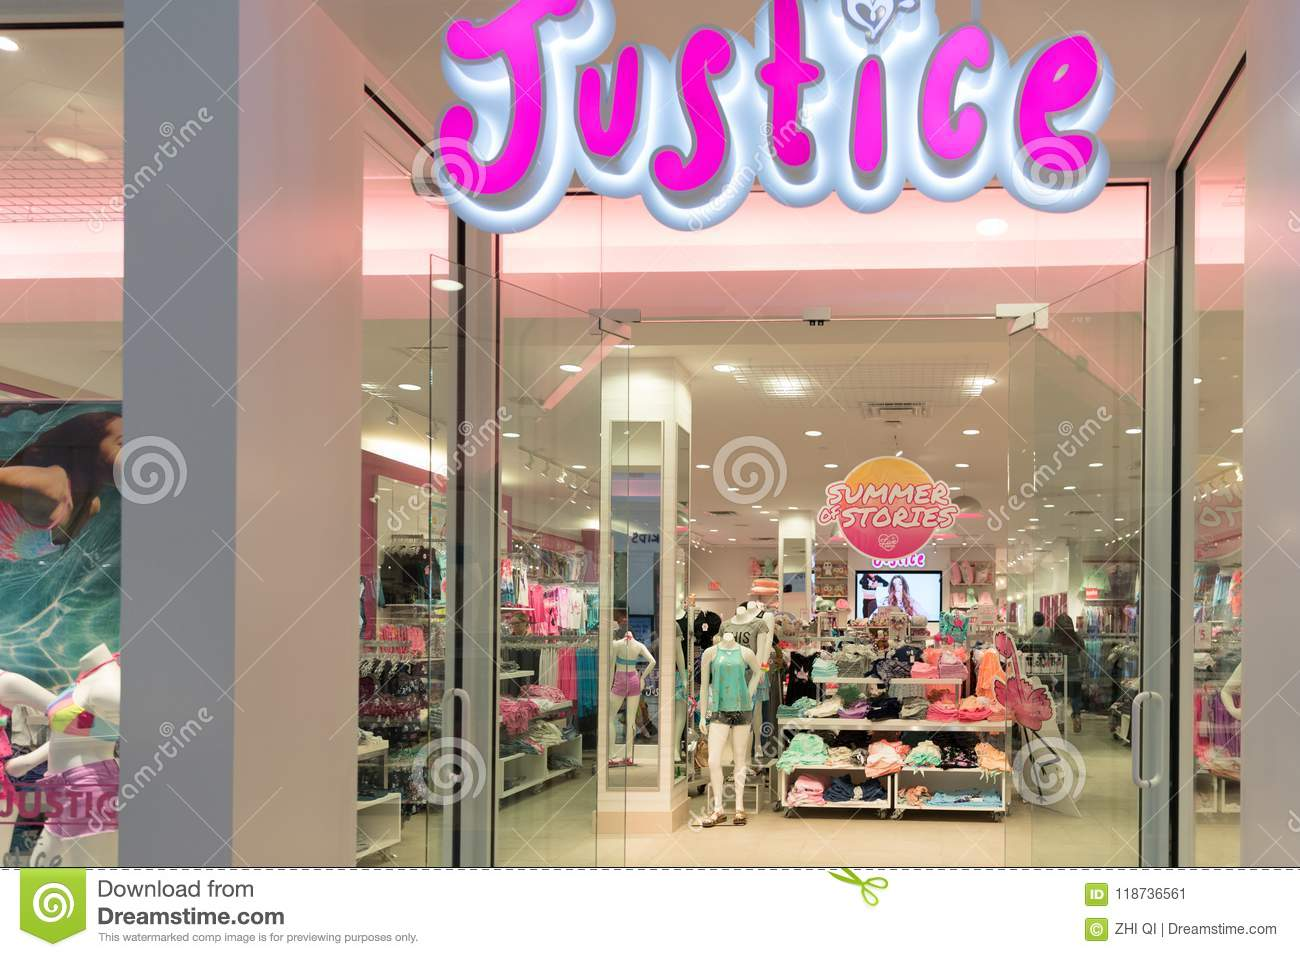 3489b5bfec0a Justice Girls Clothing Store Front Editorial Photo - Image of retail ...